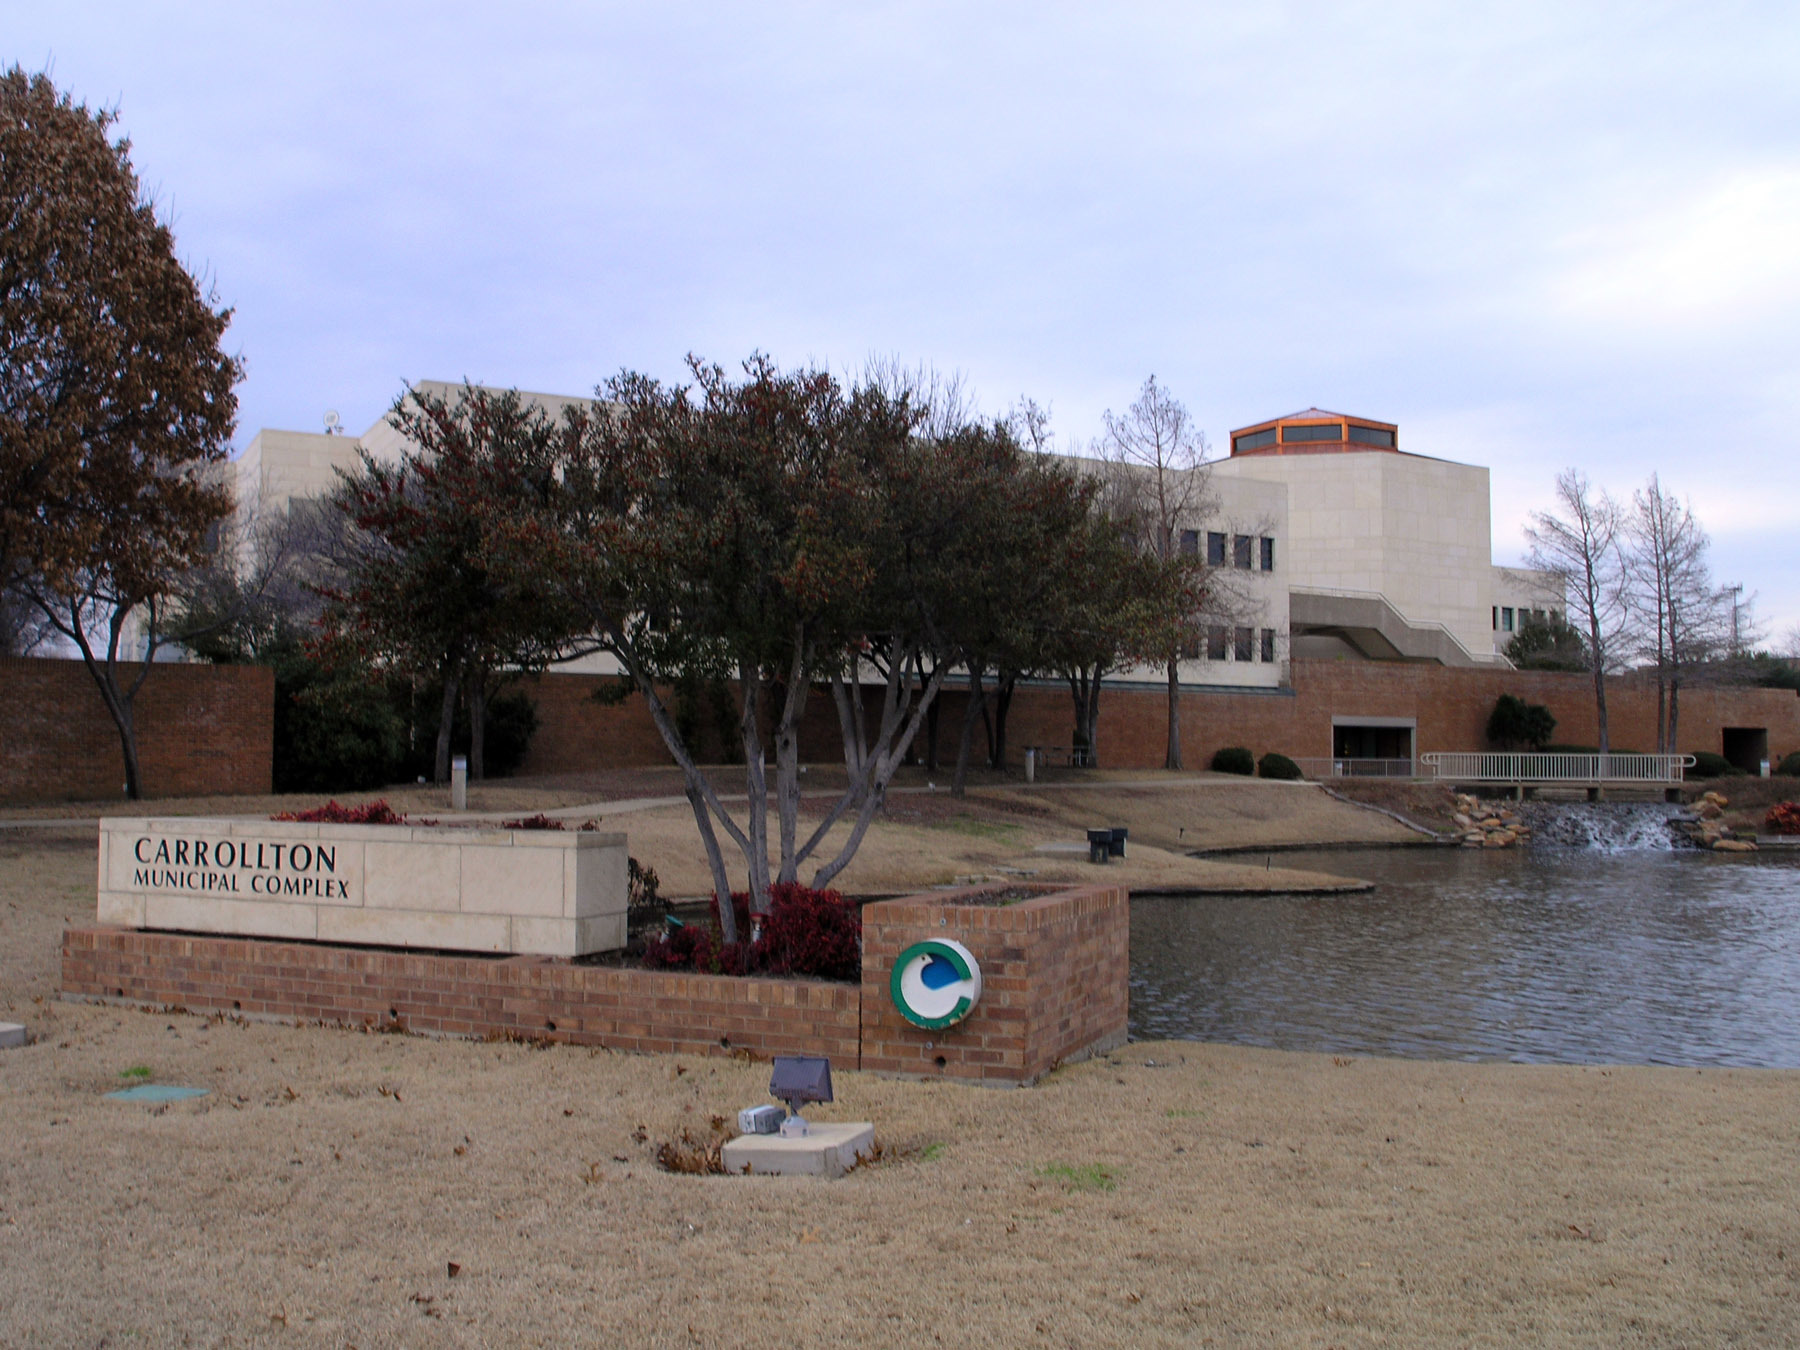 Carrollton Texas Municipal Facilities